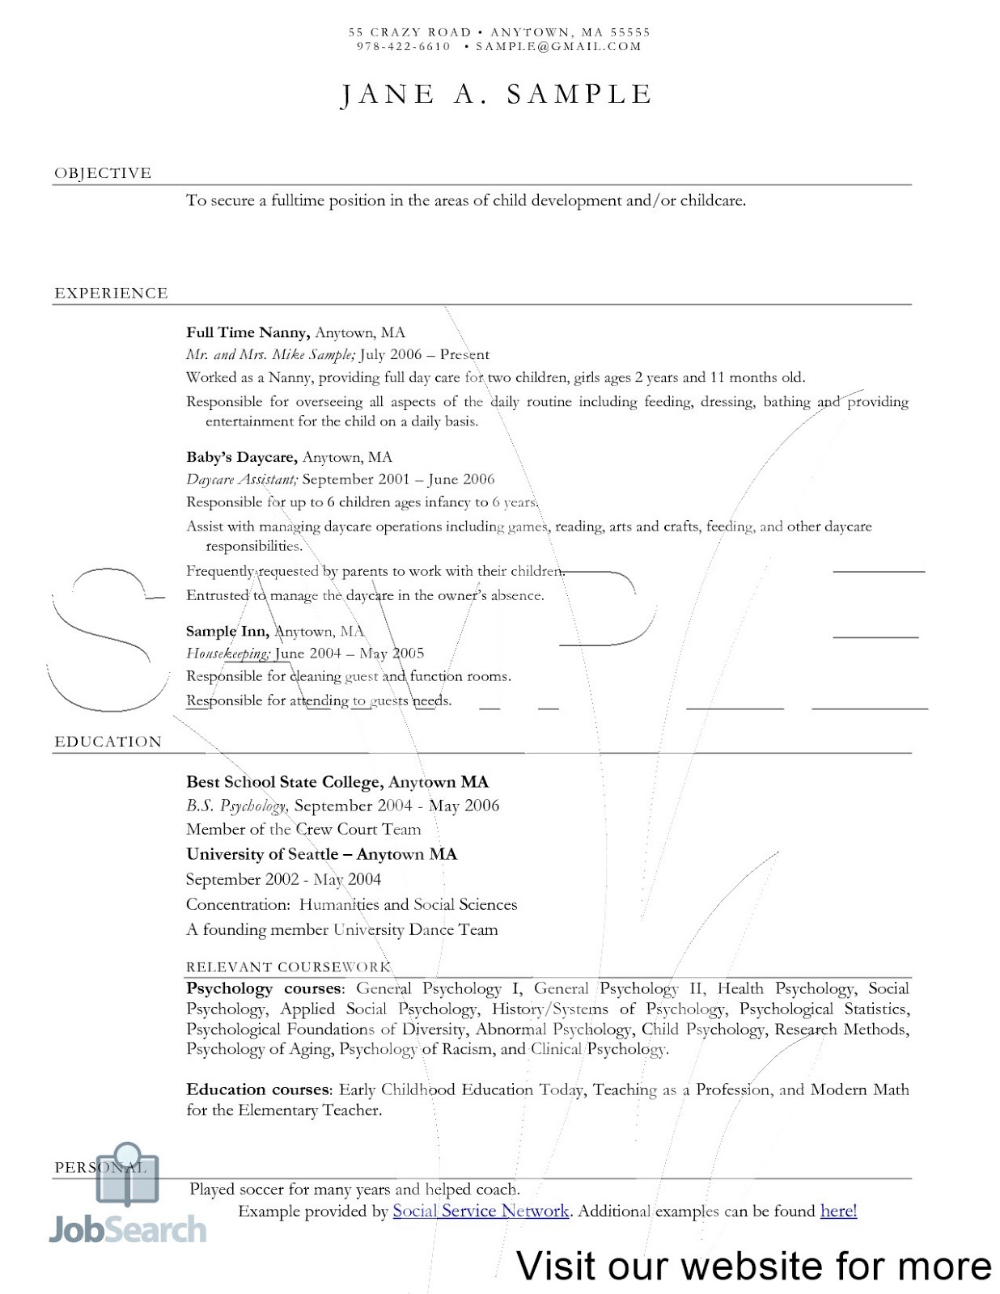 10 Resume Objective For Child Care Teacher Free Templates